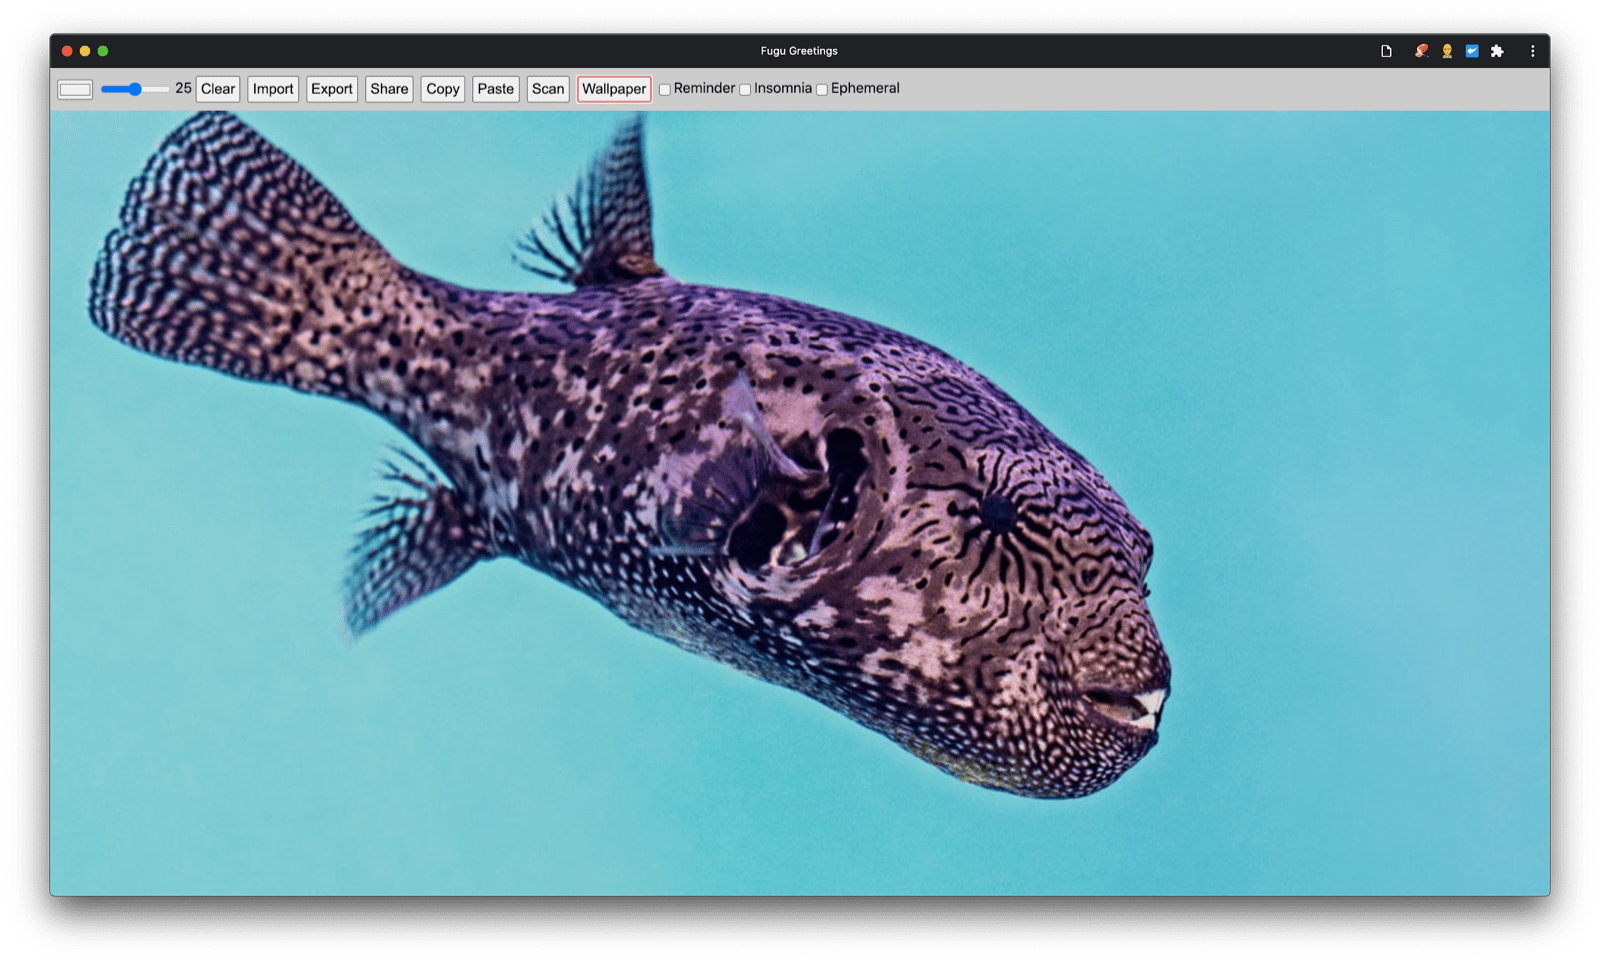 Fugu Greetings app with a new greeting card image of the day.